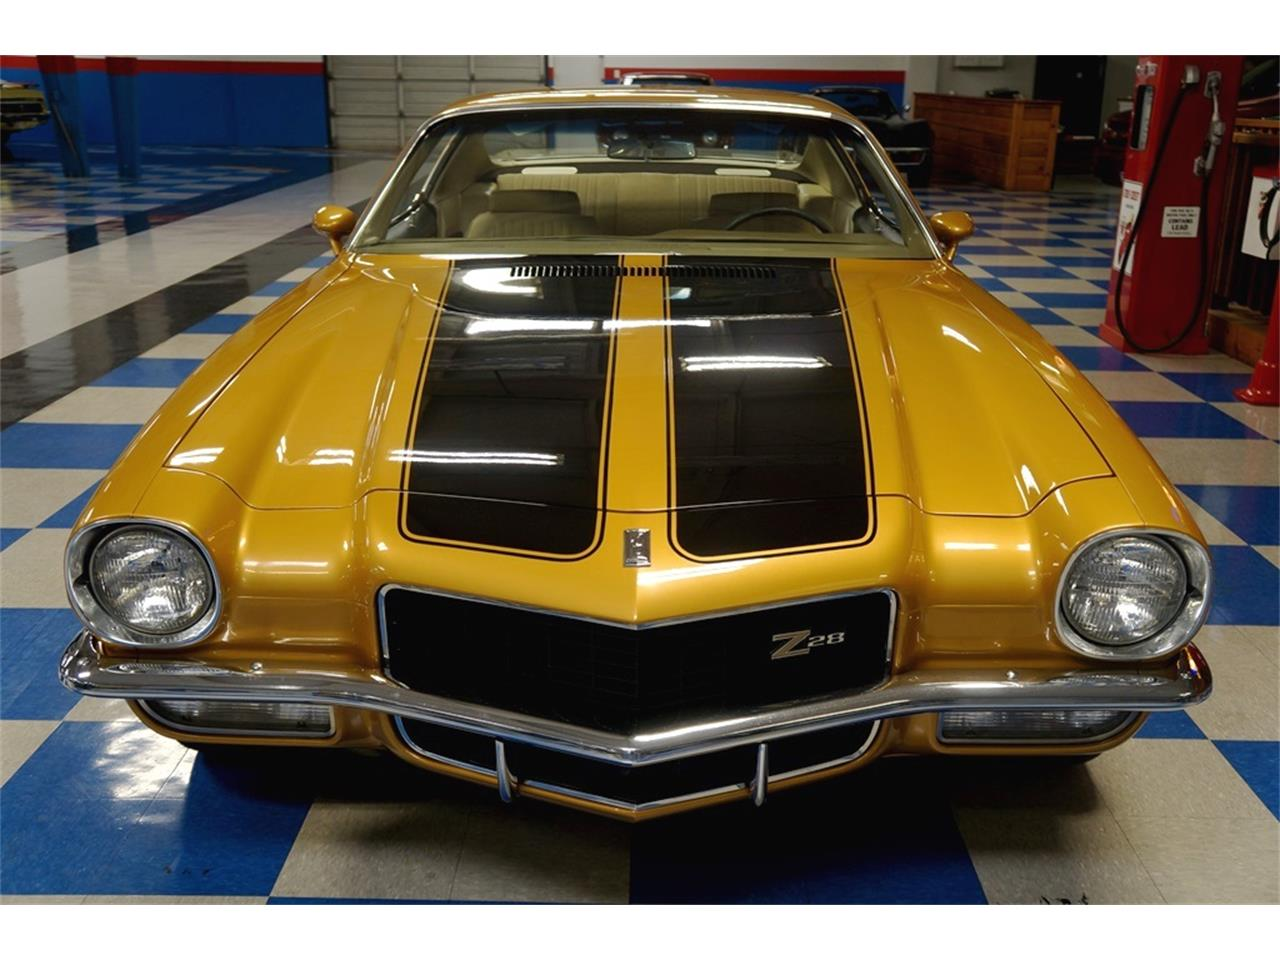 Large Picture of 1970 Chevrolet Camaro located in Texas - $29,900.00 Offered by A&E Classic Cars - L8LT